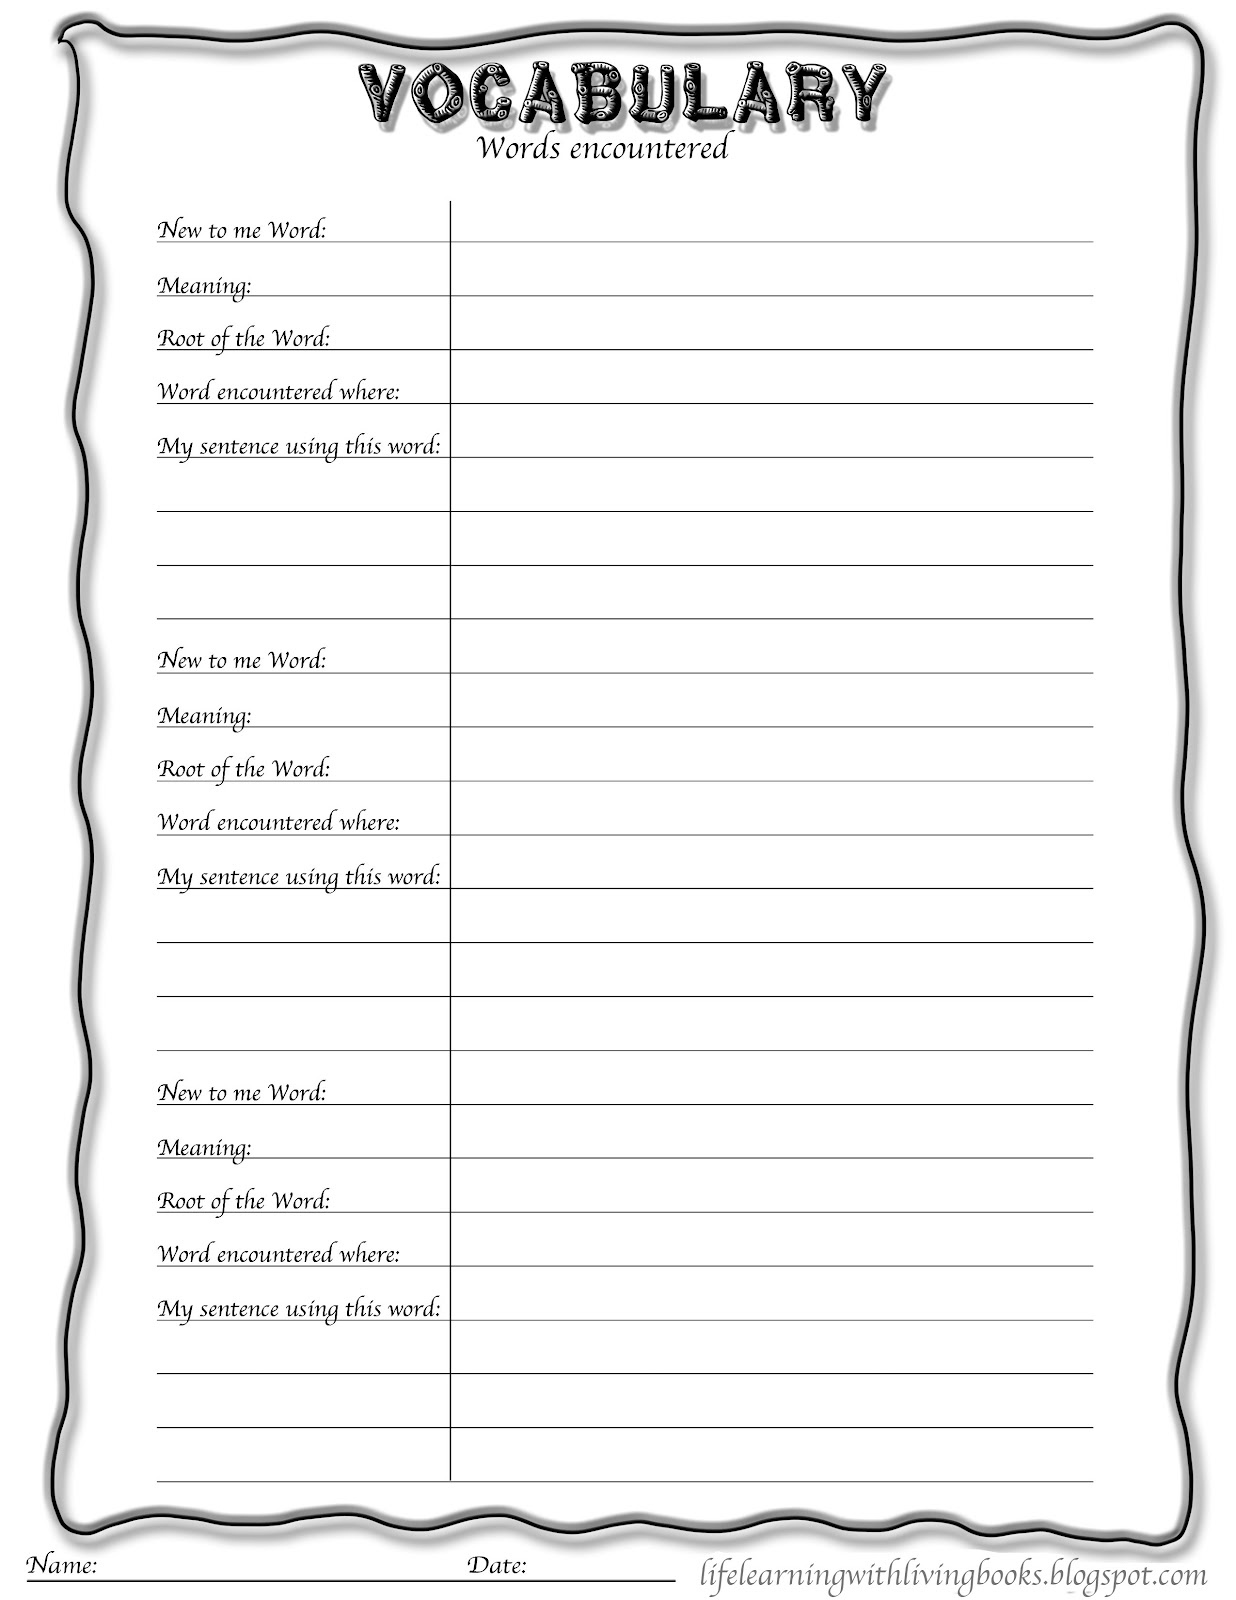 worksheet fourth grade vocabulary worksheets grass fedjp worksheet